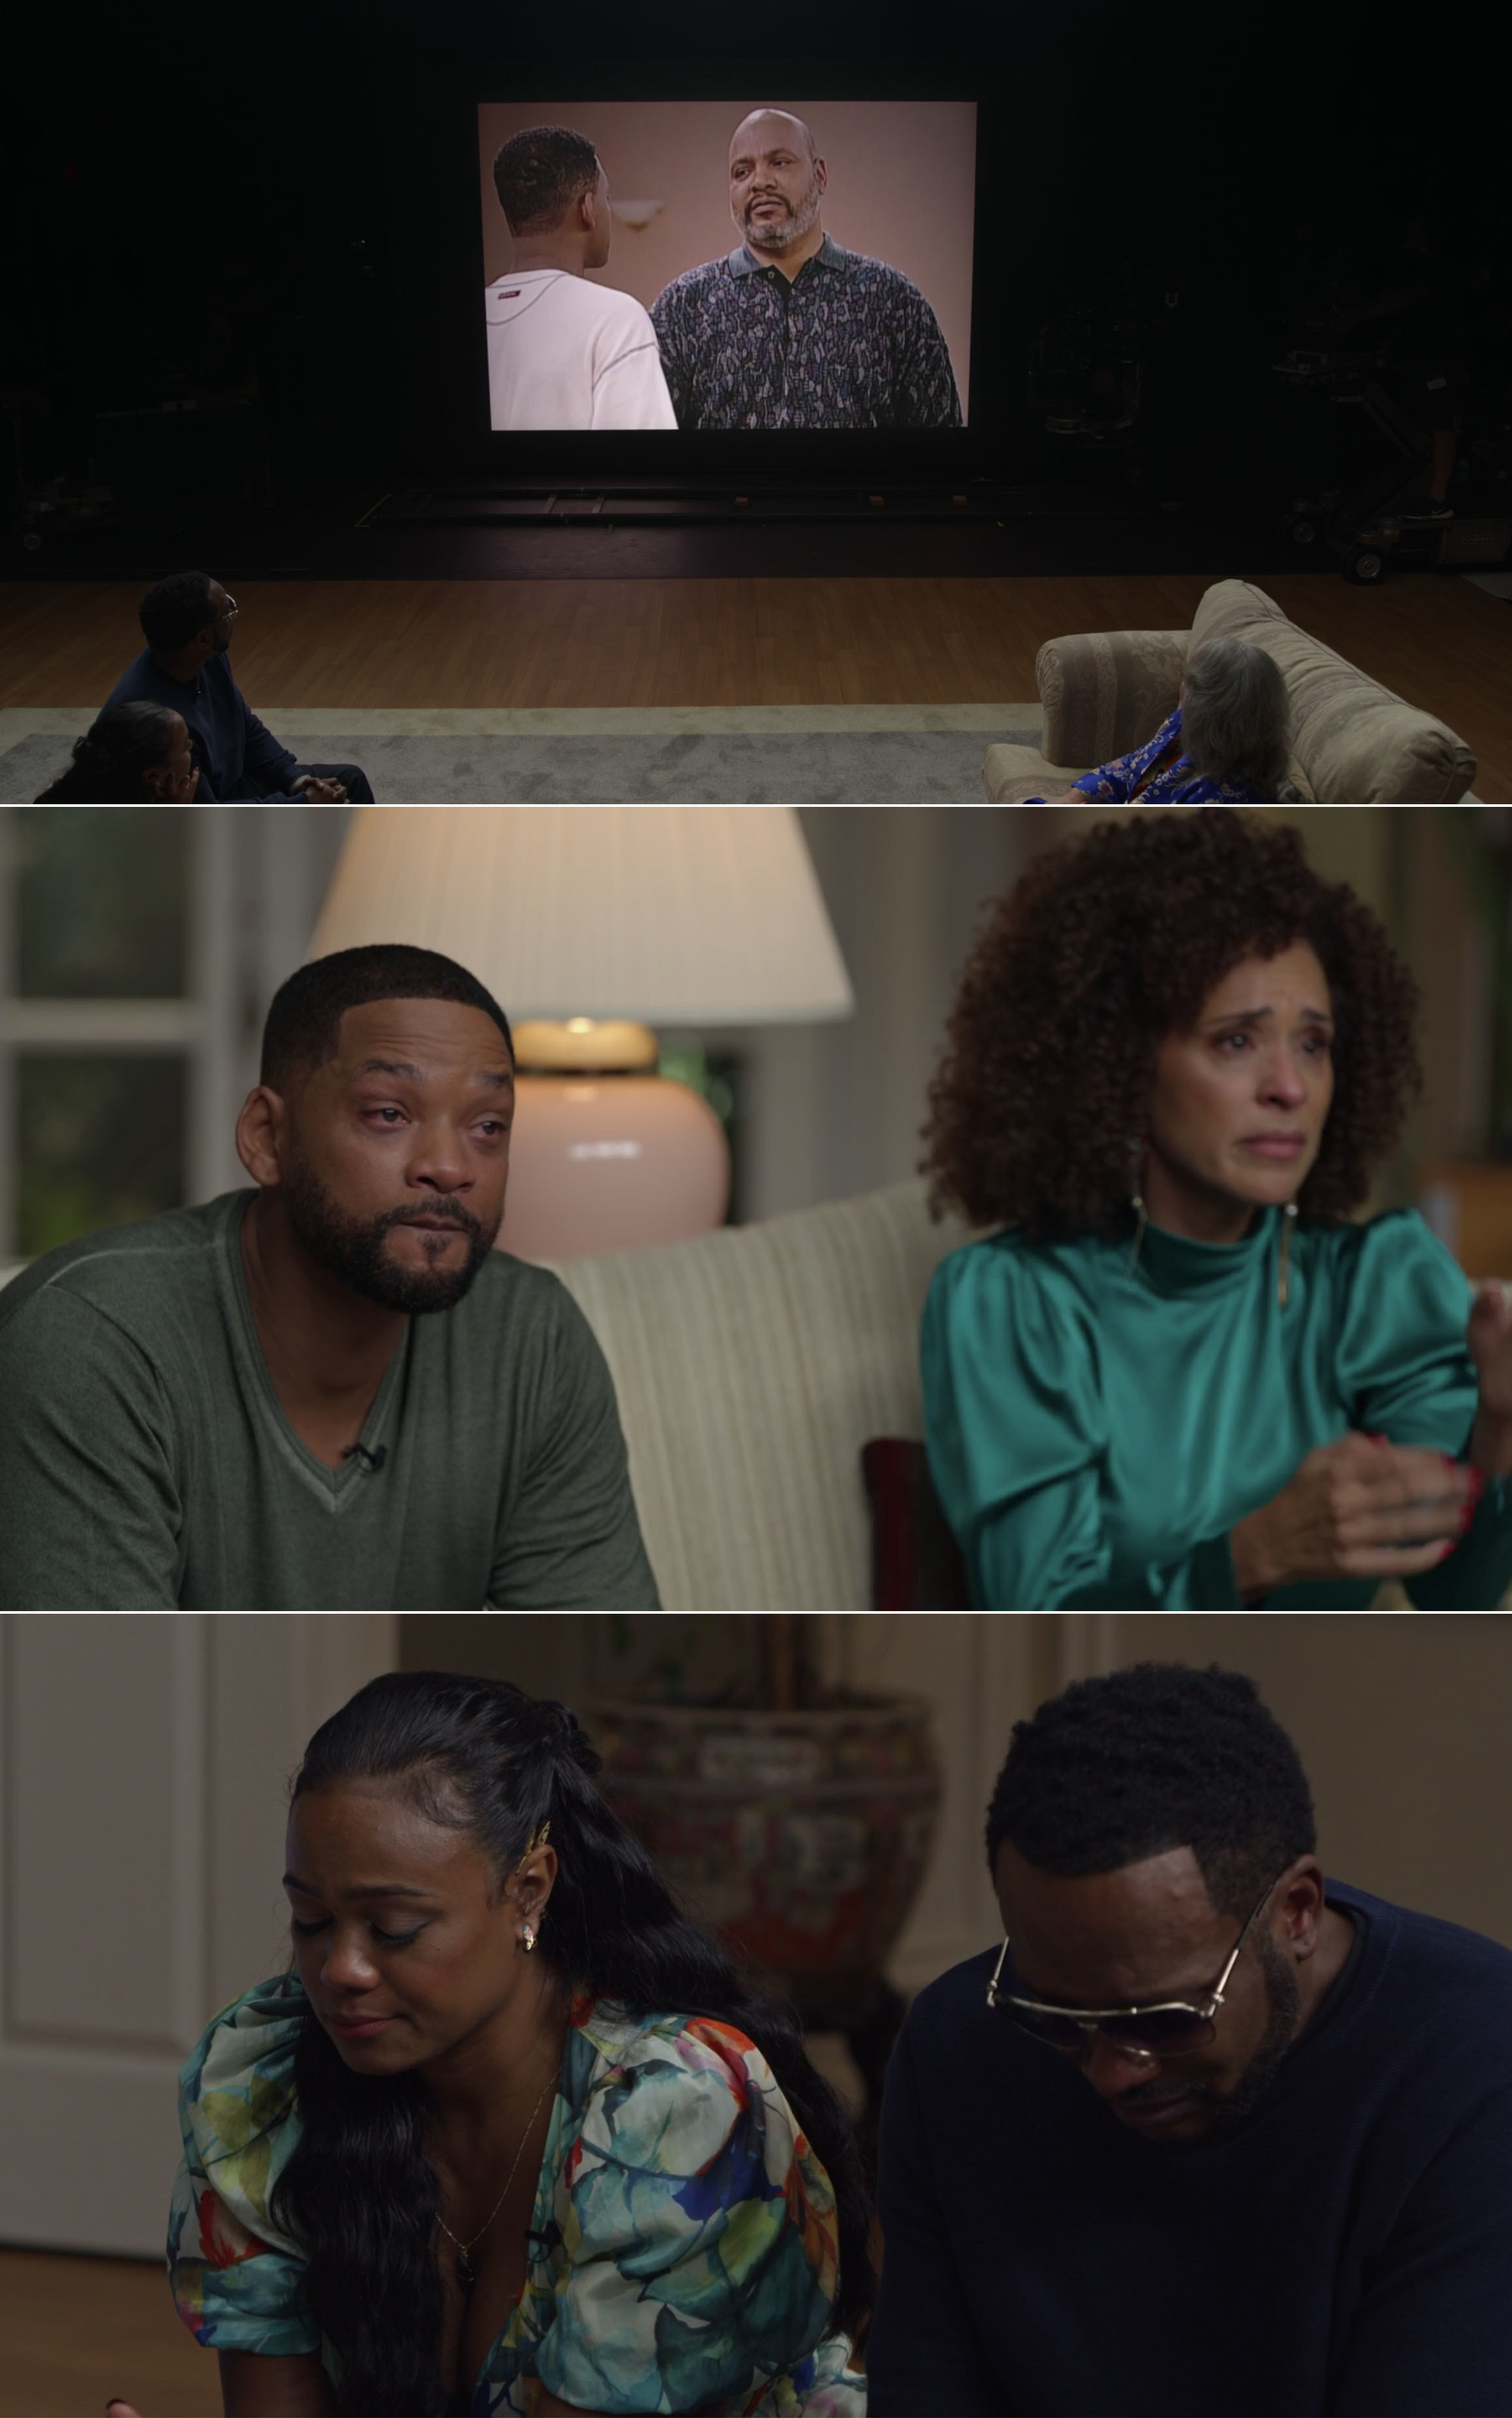 The Fresh Prince of Bel-Air cast crying after watching clips of James Avery